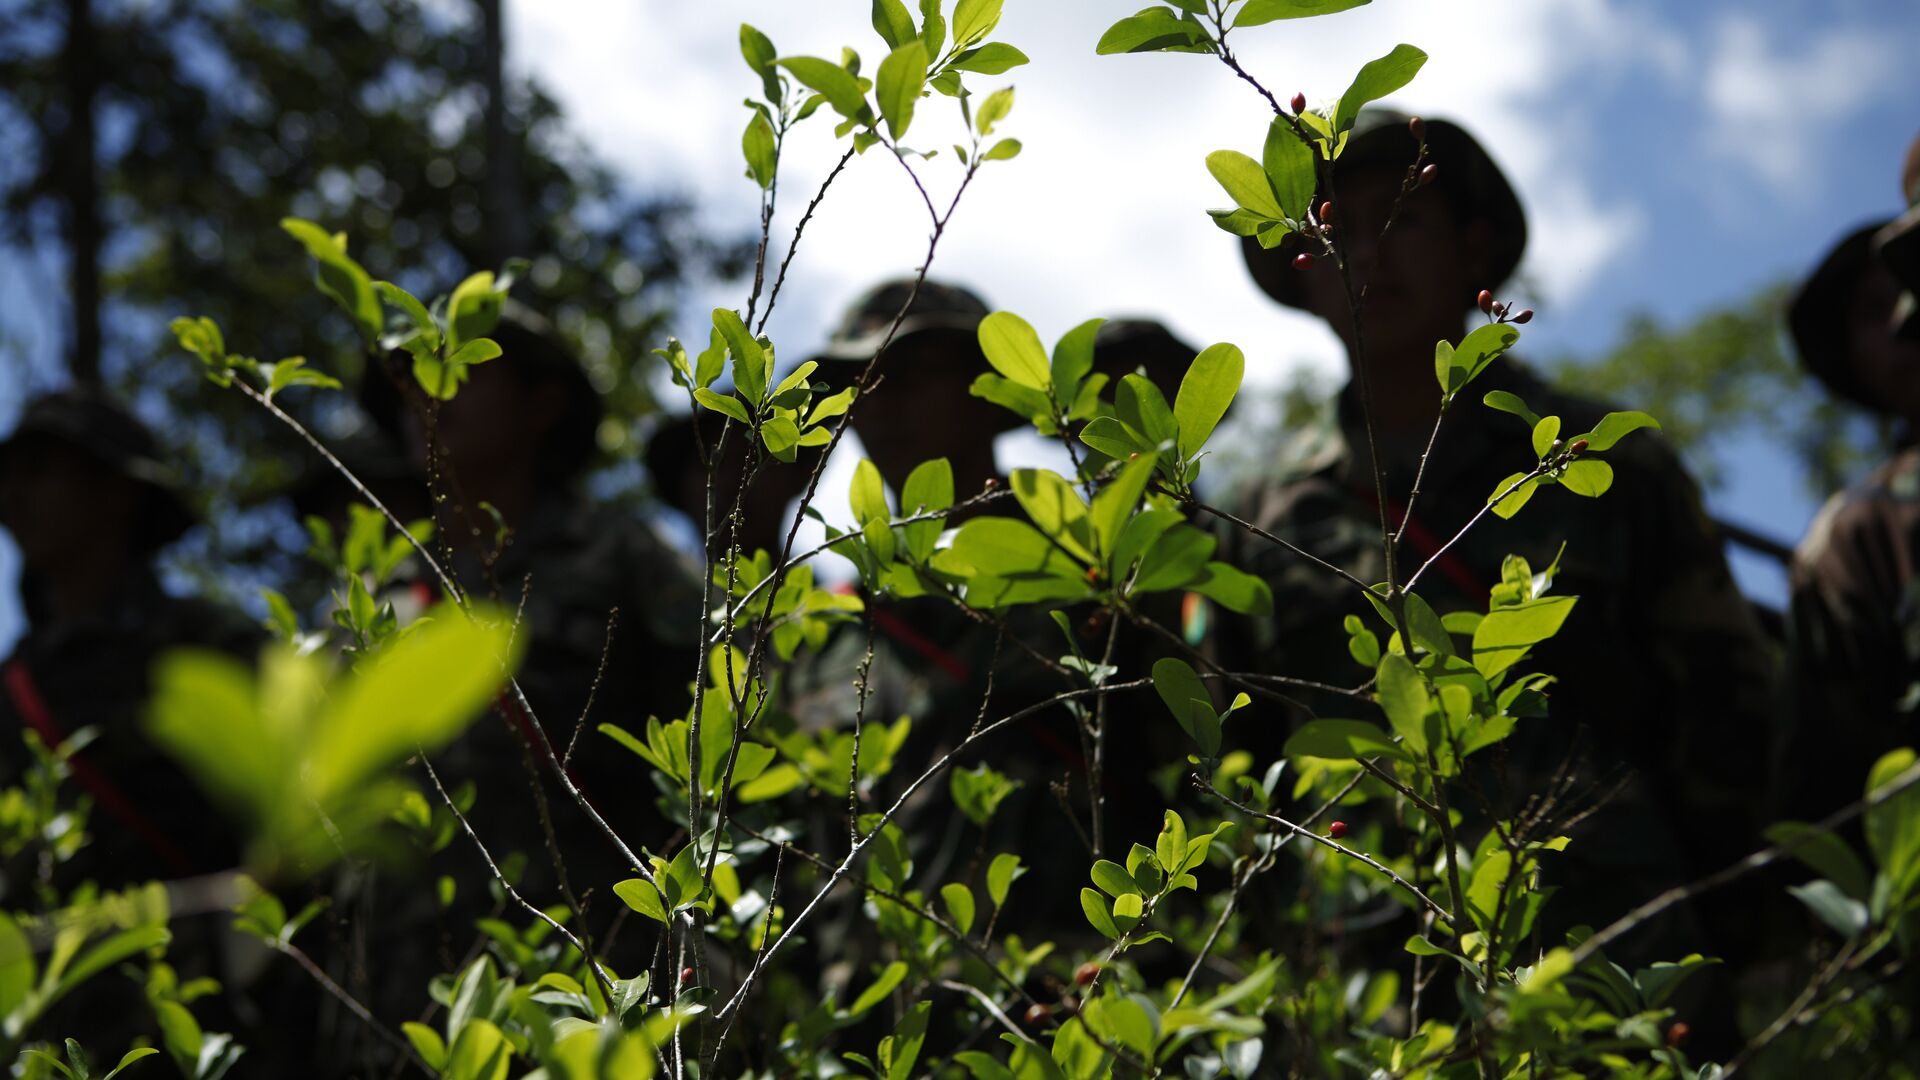 Soldiers stand next to illegally grown coca plants before uprooting them in Paraiso, Bolivia, Monday, Jan. 16, 2012. - Sputnik Mundo, 1920, 22.09.2021